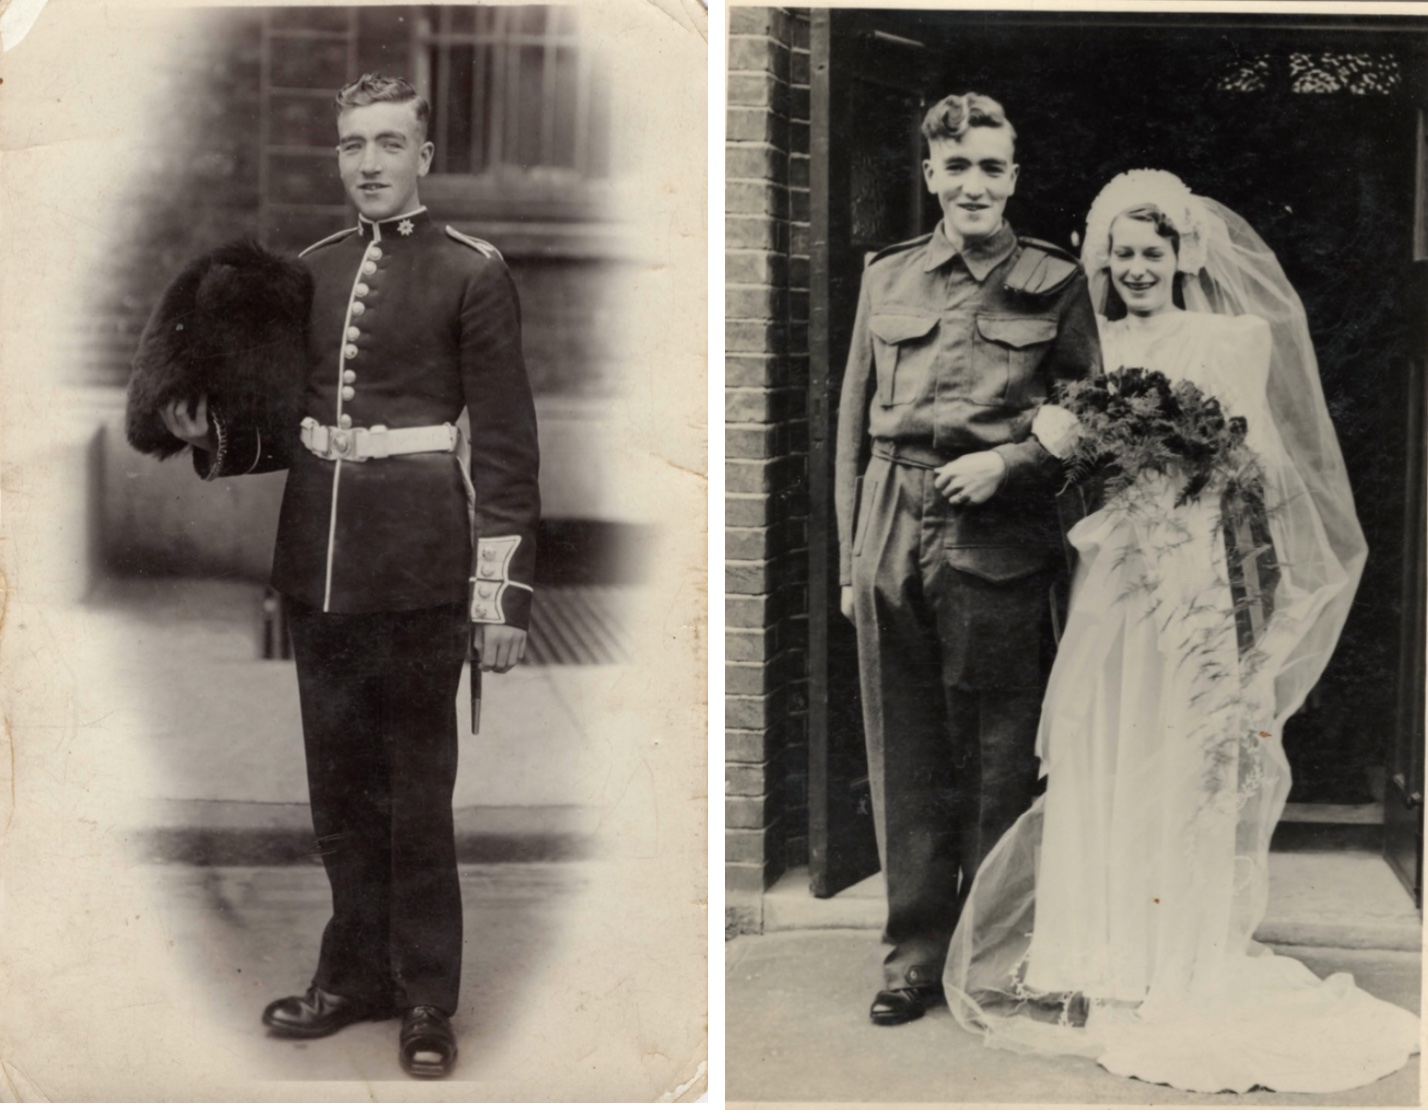 David as Guardsman in 1938 or 1939 and the day of his wedding to Mary. David is in military uniform and Mary in a traditional wedding dress.